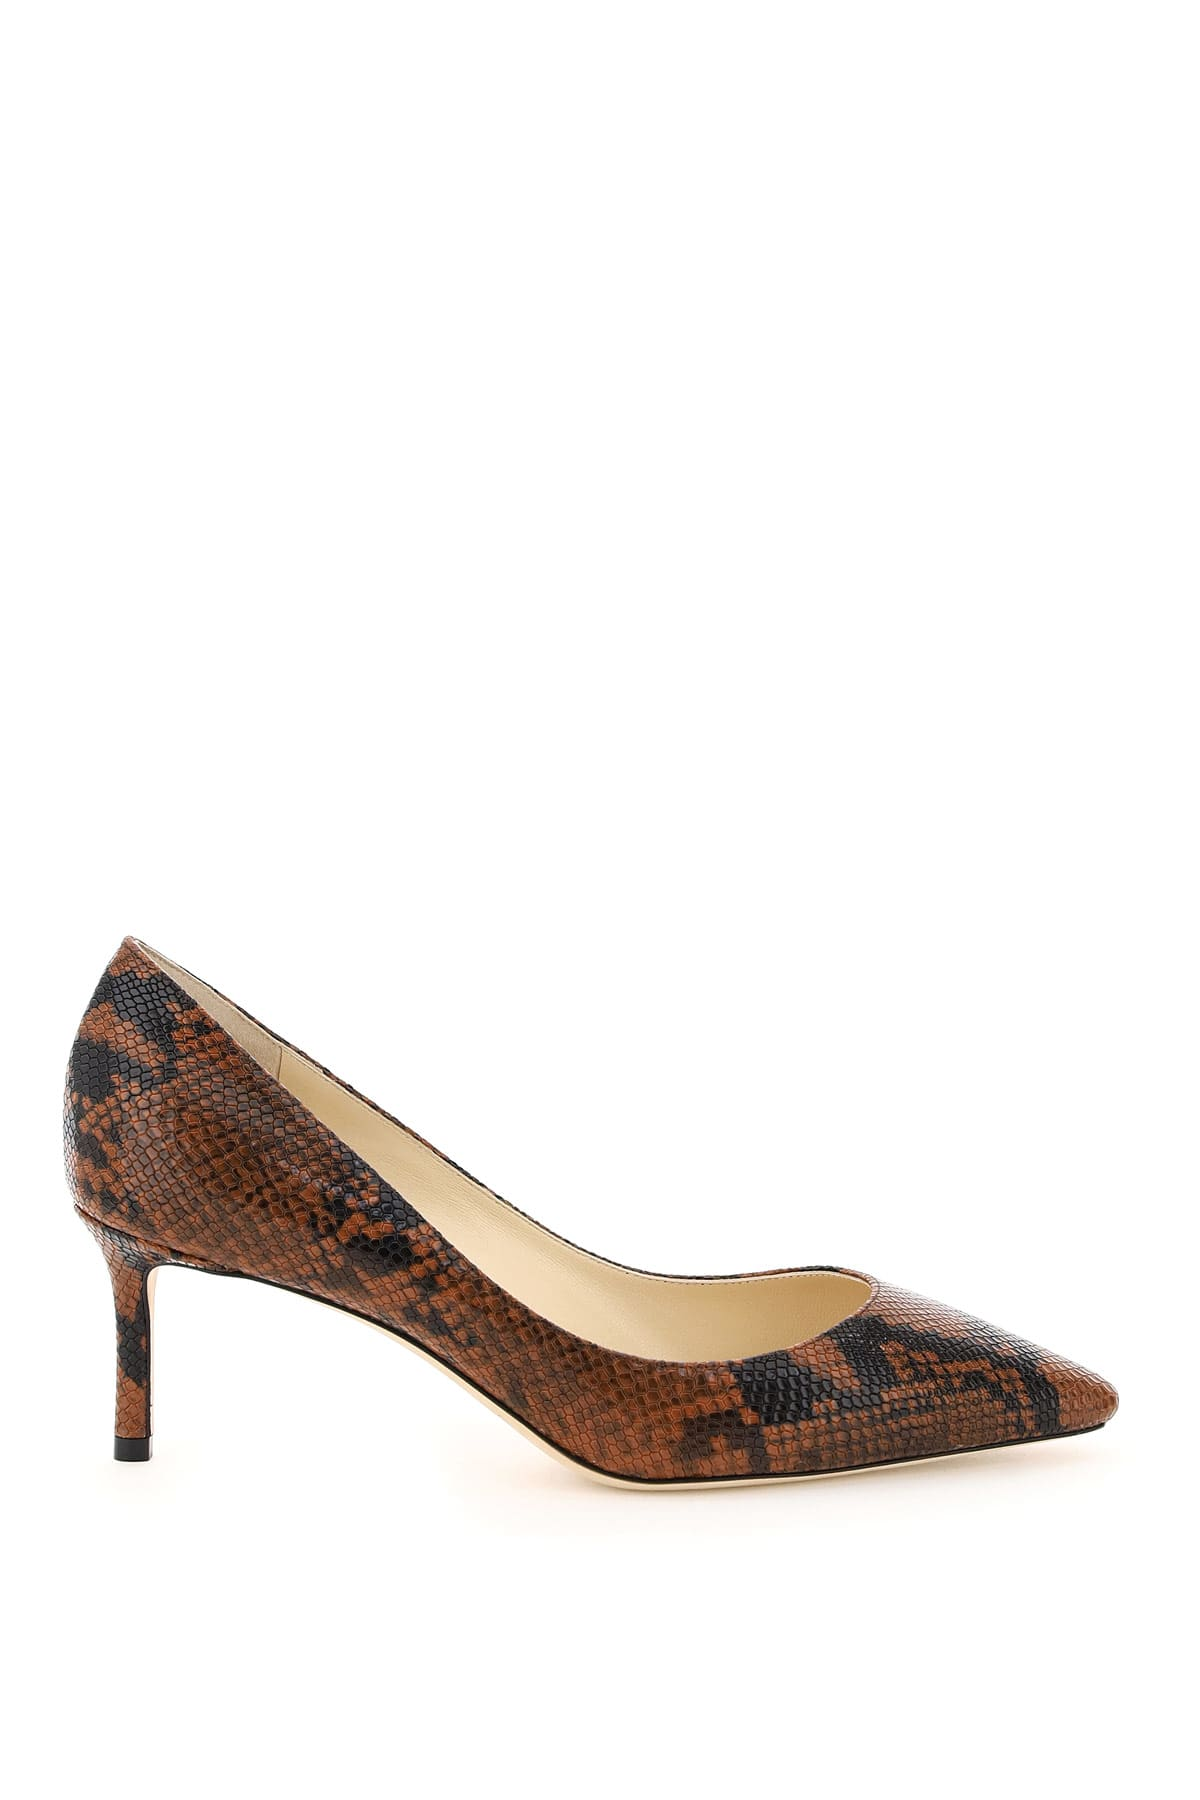 Jimmy Choo ROMY 60 PYTHON PRINT LEATHER PUMPS